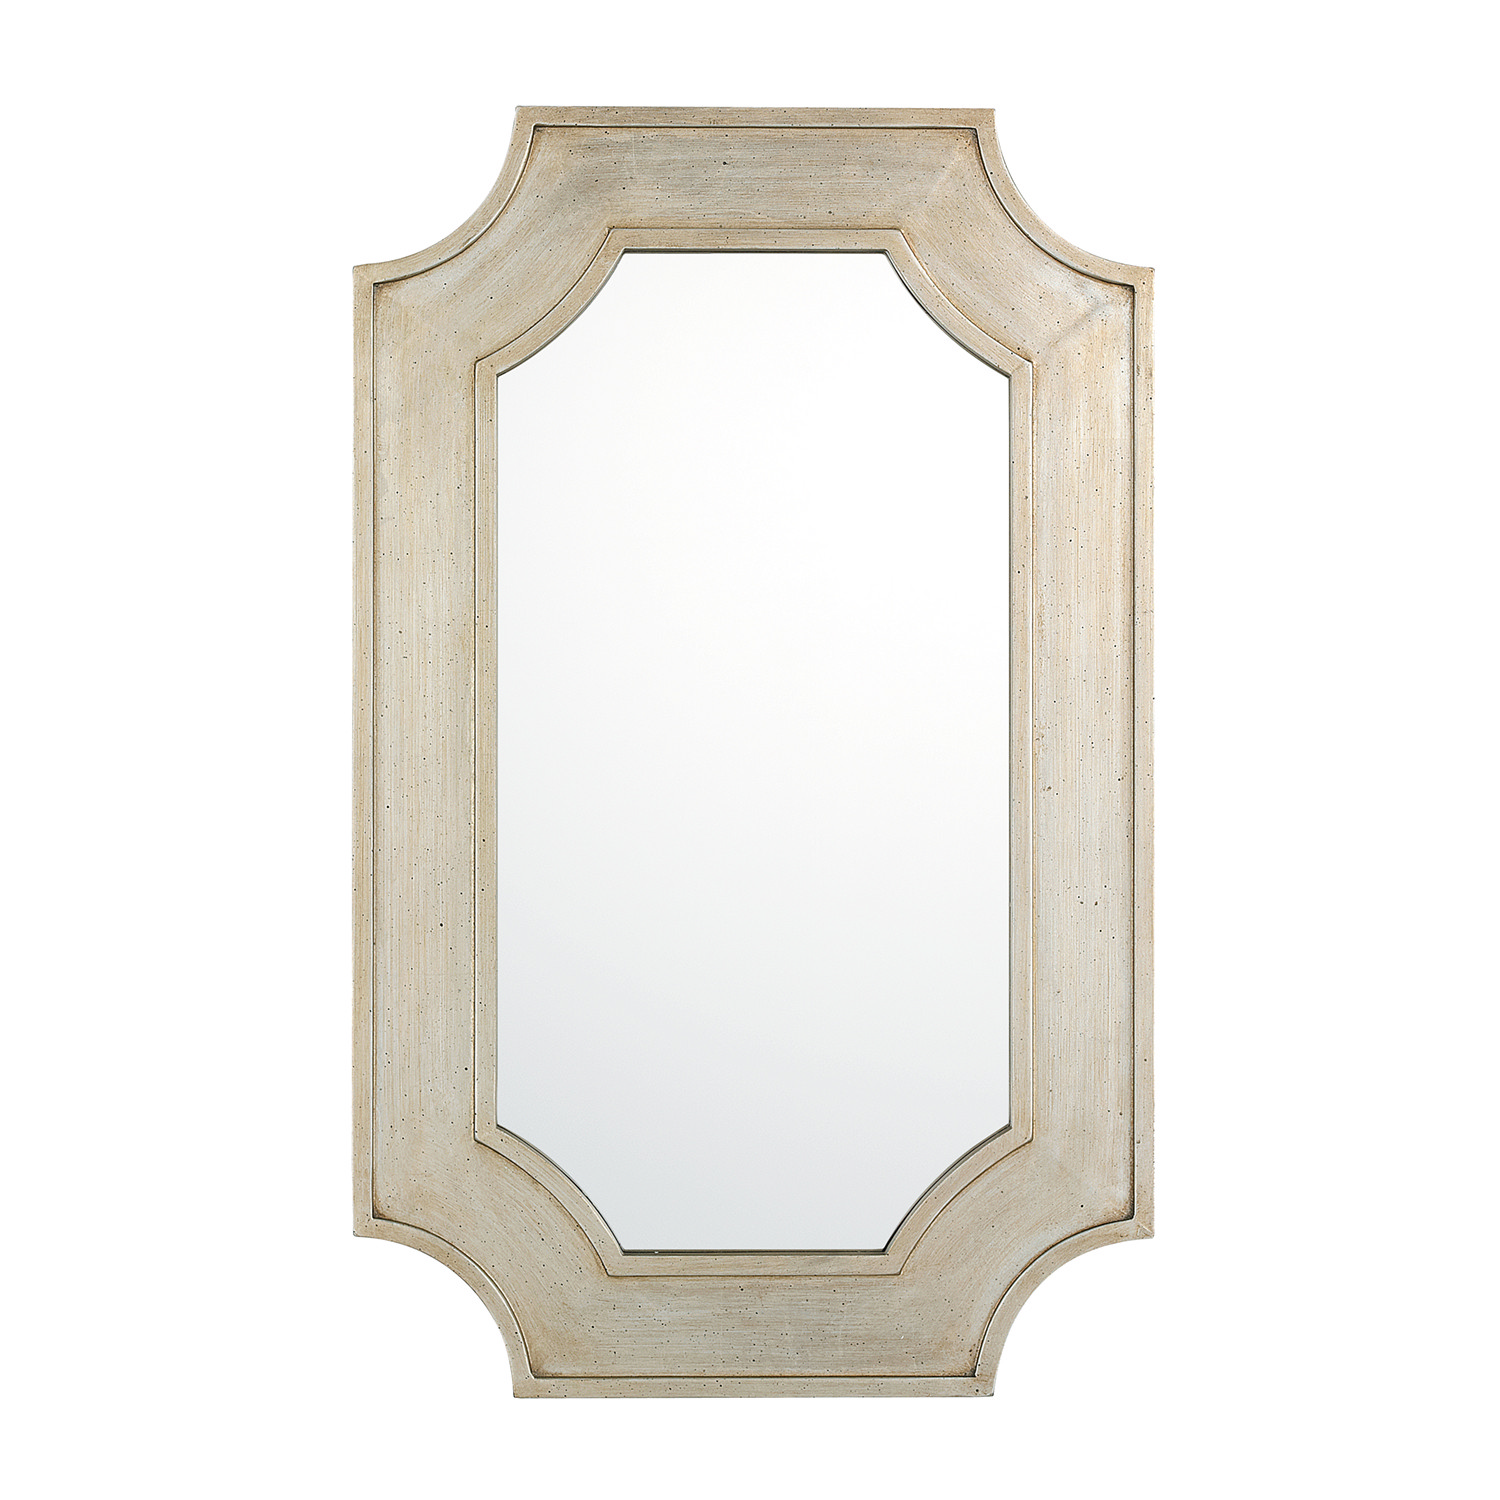 Decorative Mirror from the Mirrors collection by Capital Lighting M251387